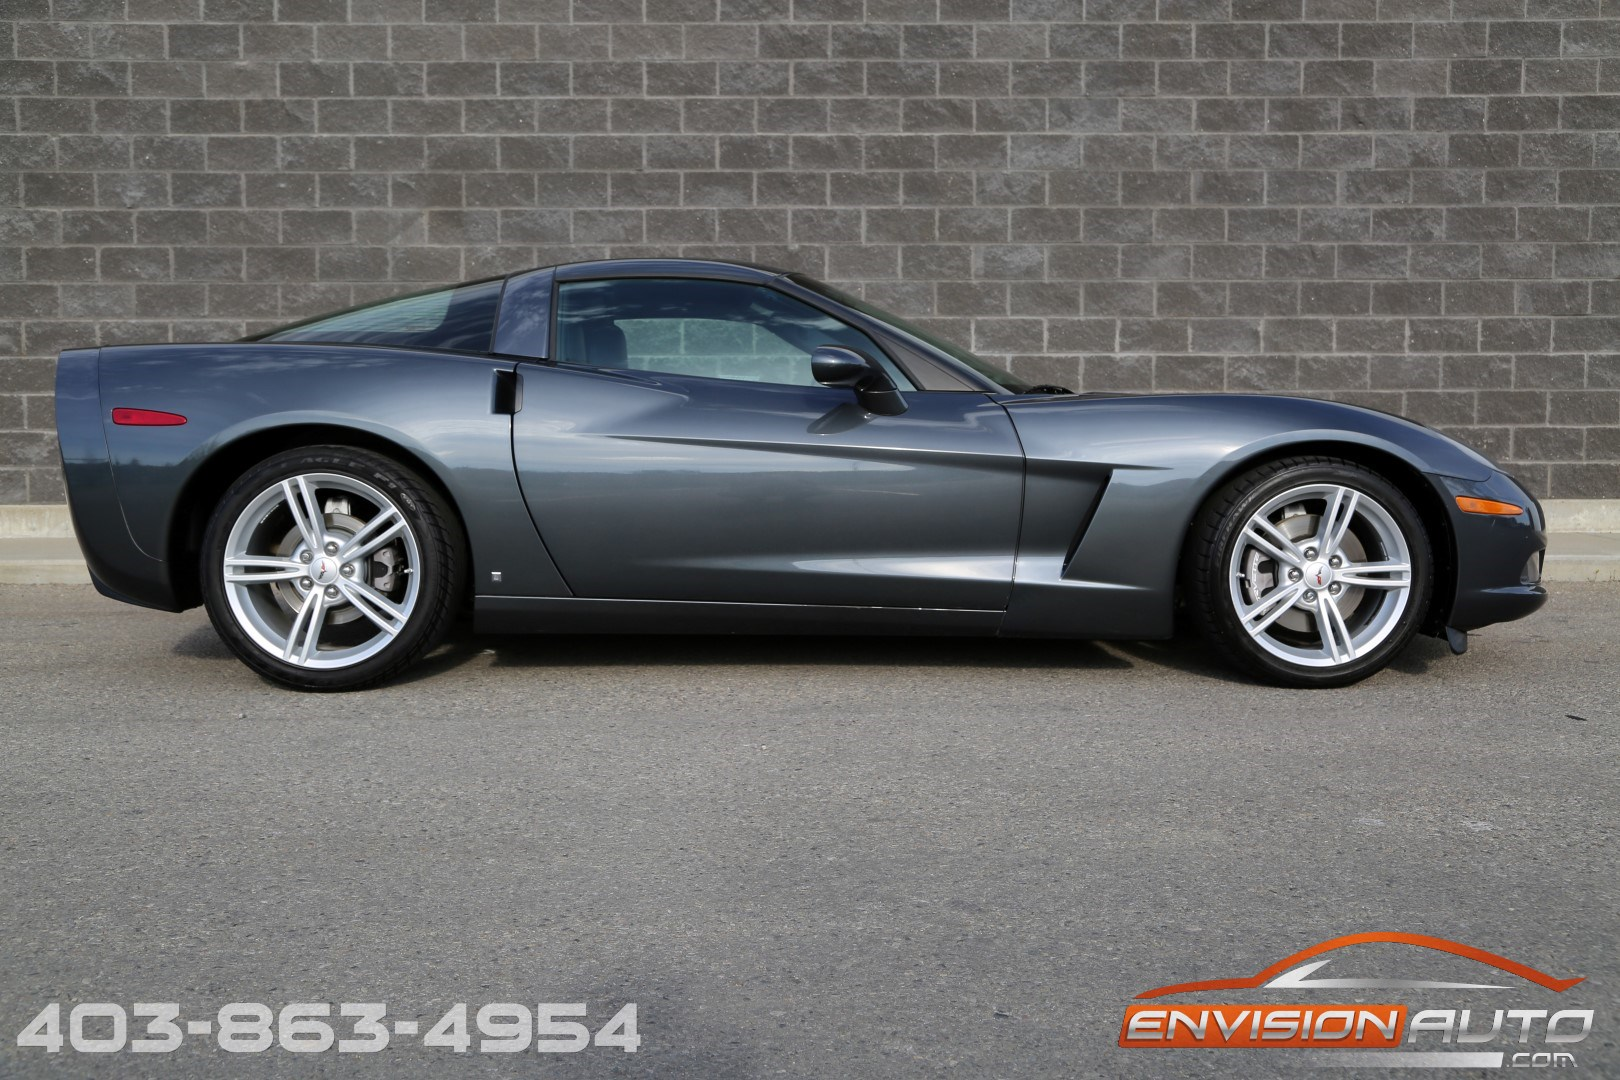 2009 chevrolet corvette coupe 3lt envision auto. Black Bedroom Furniture Sets. Home Design Ideas